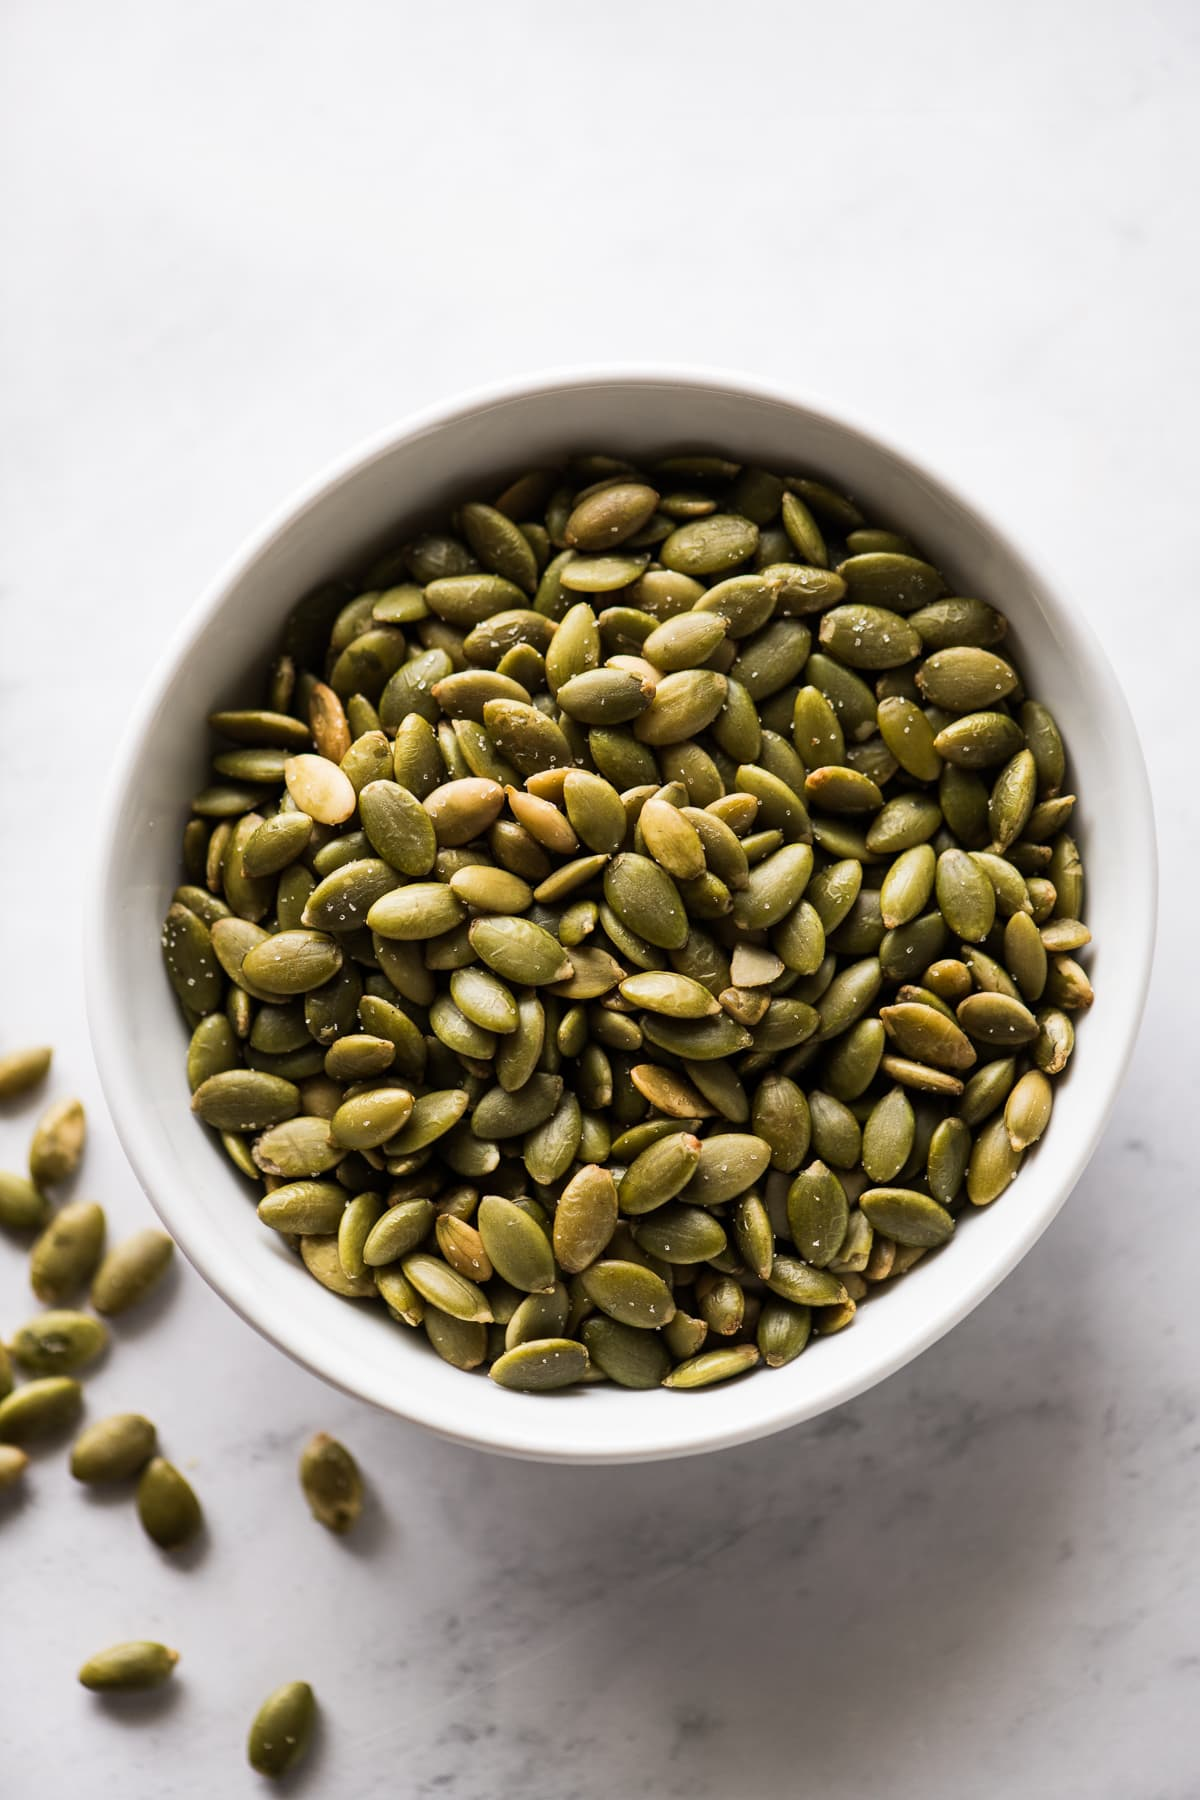 Pepitas (roasted pumpkin seeds) in a small bowl.